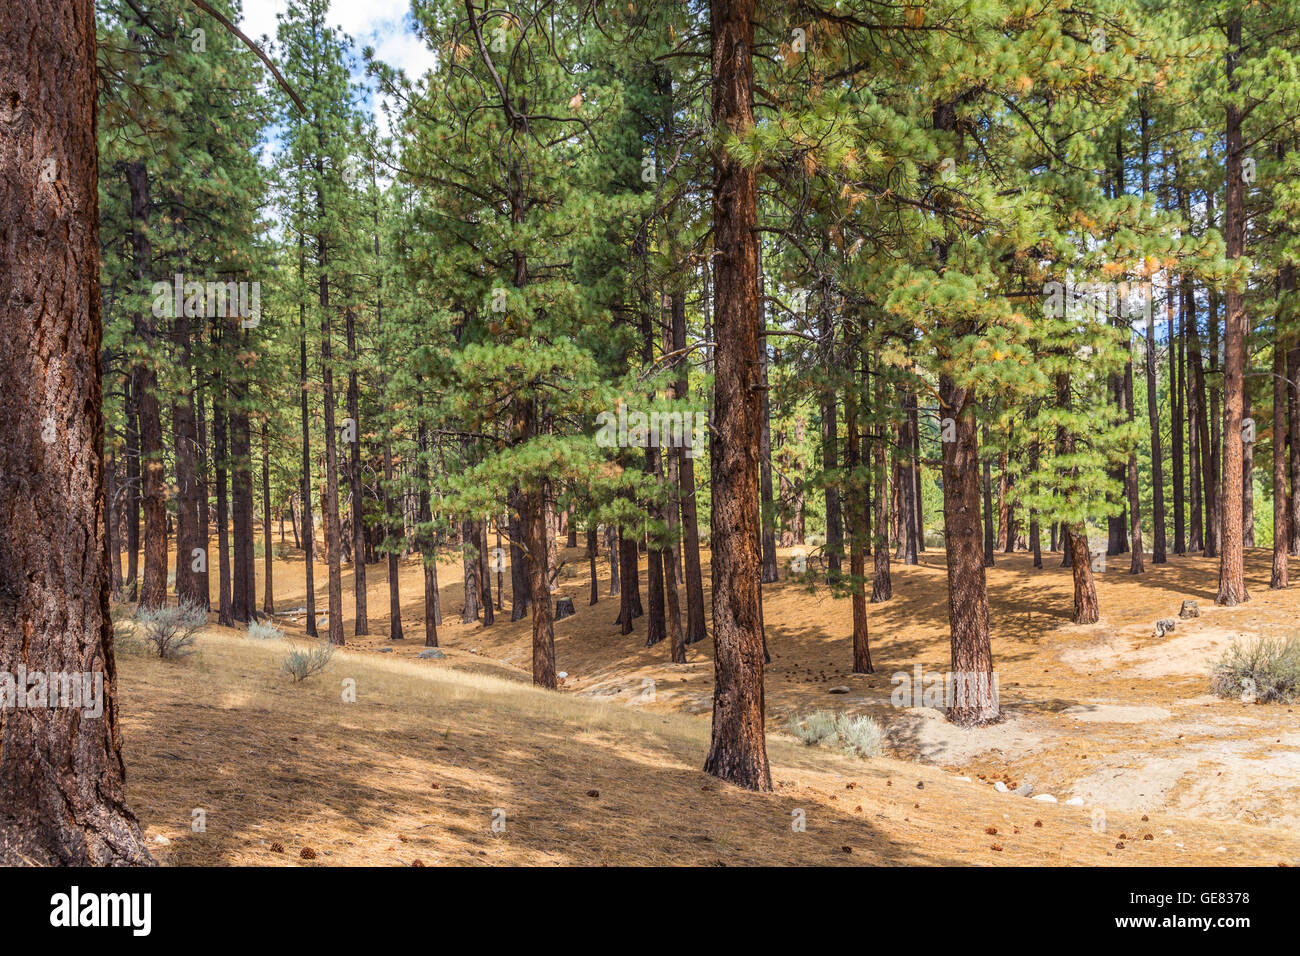 Beautiful Jeffrey Pine Forest with leading lines and diagonals,Washoe Valley Nevada - Stock Image